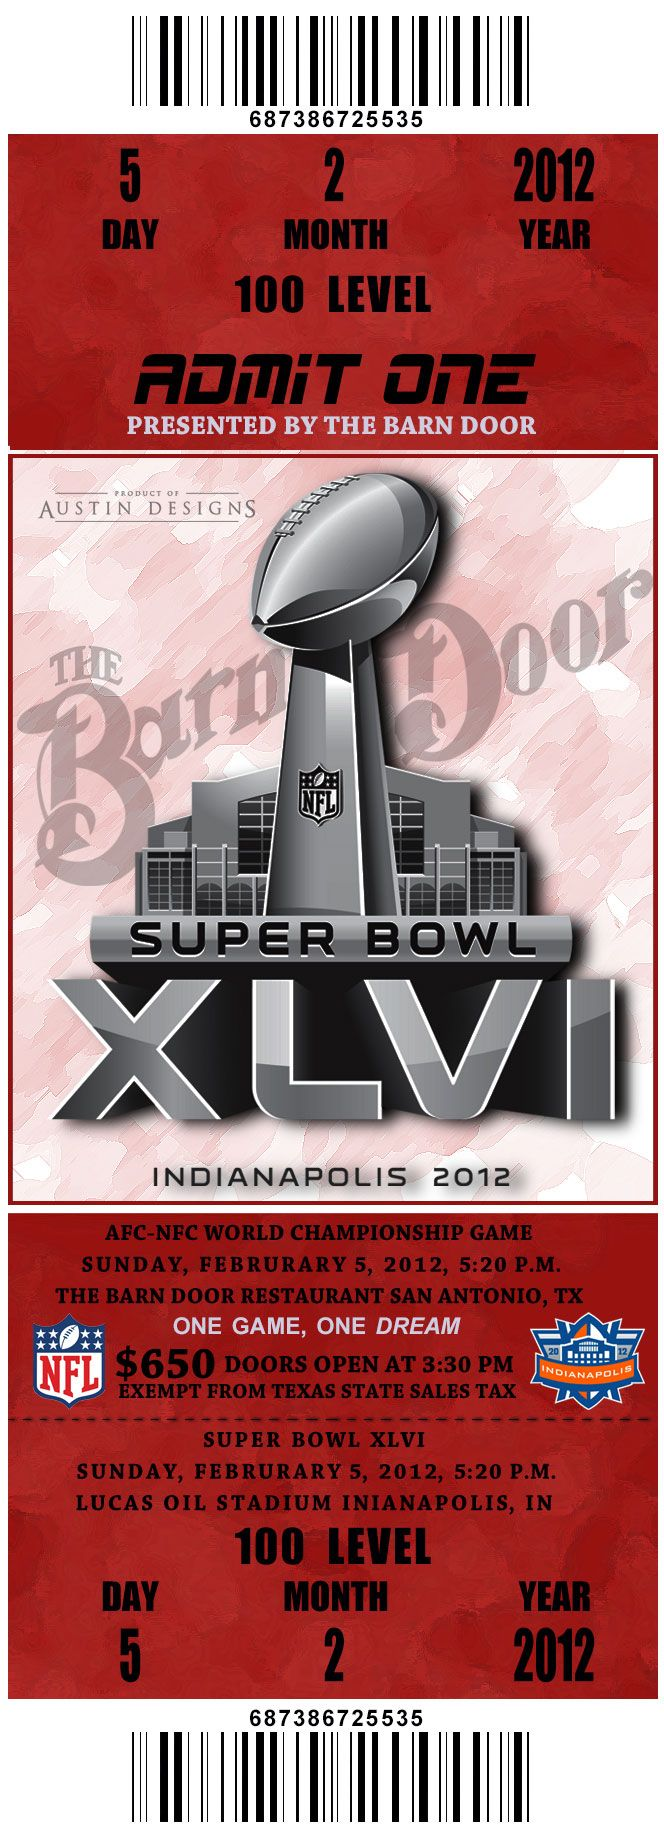 Fake Superbowl Tickets For A Work Party At The Barn Door Restaurant